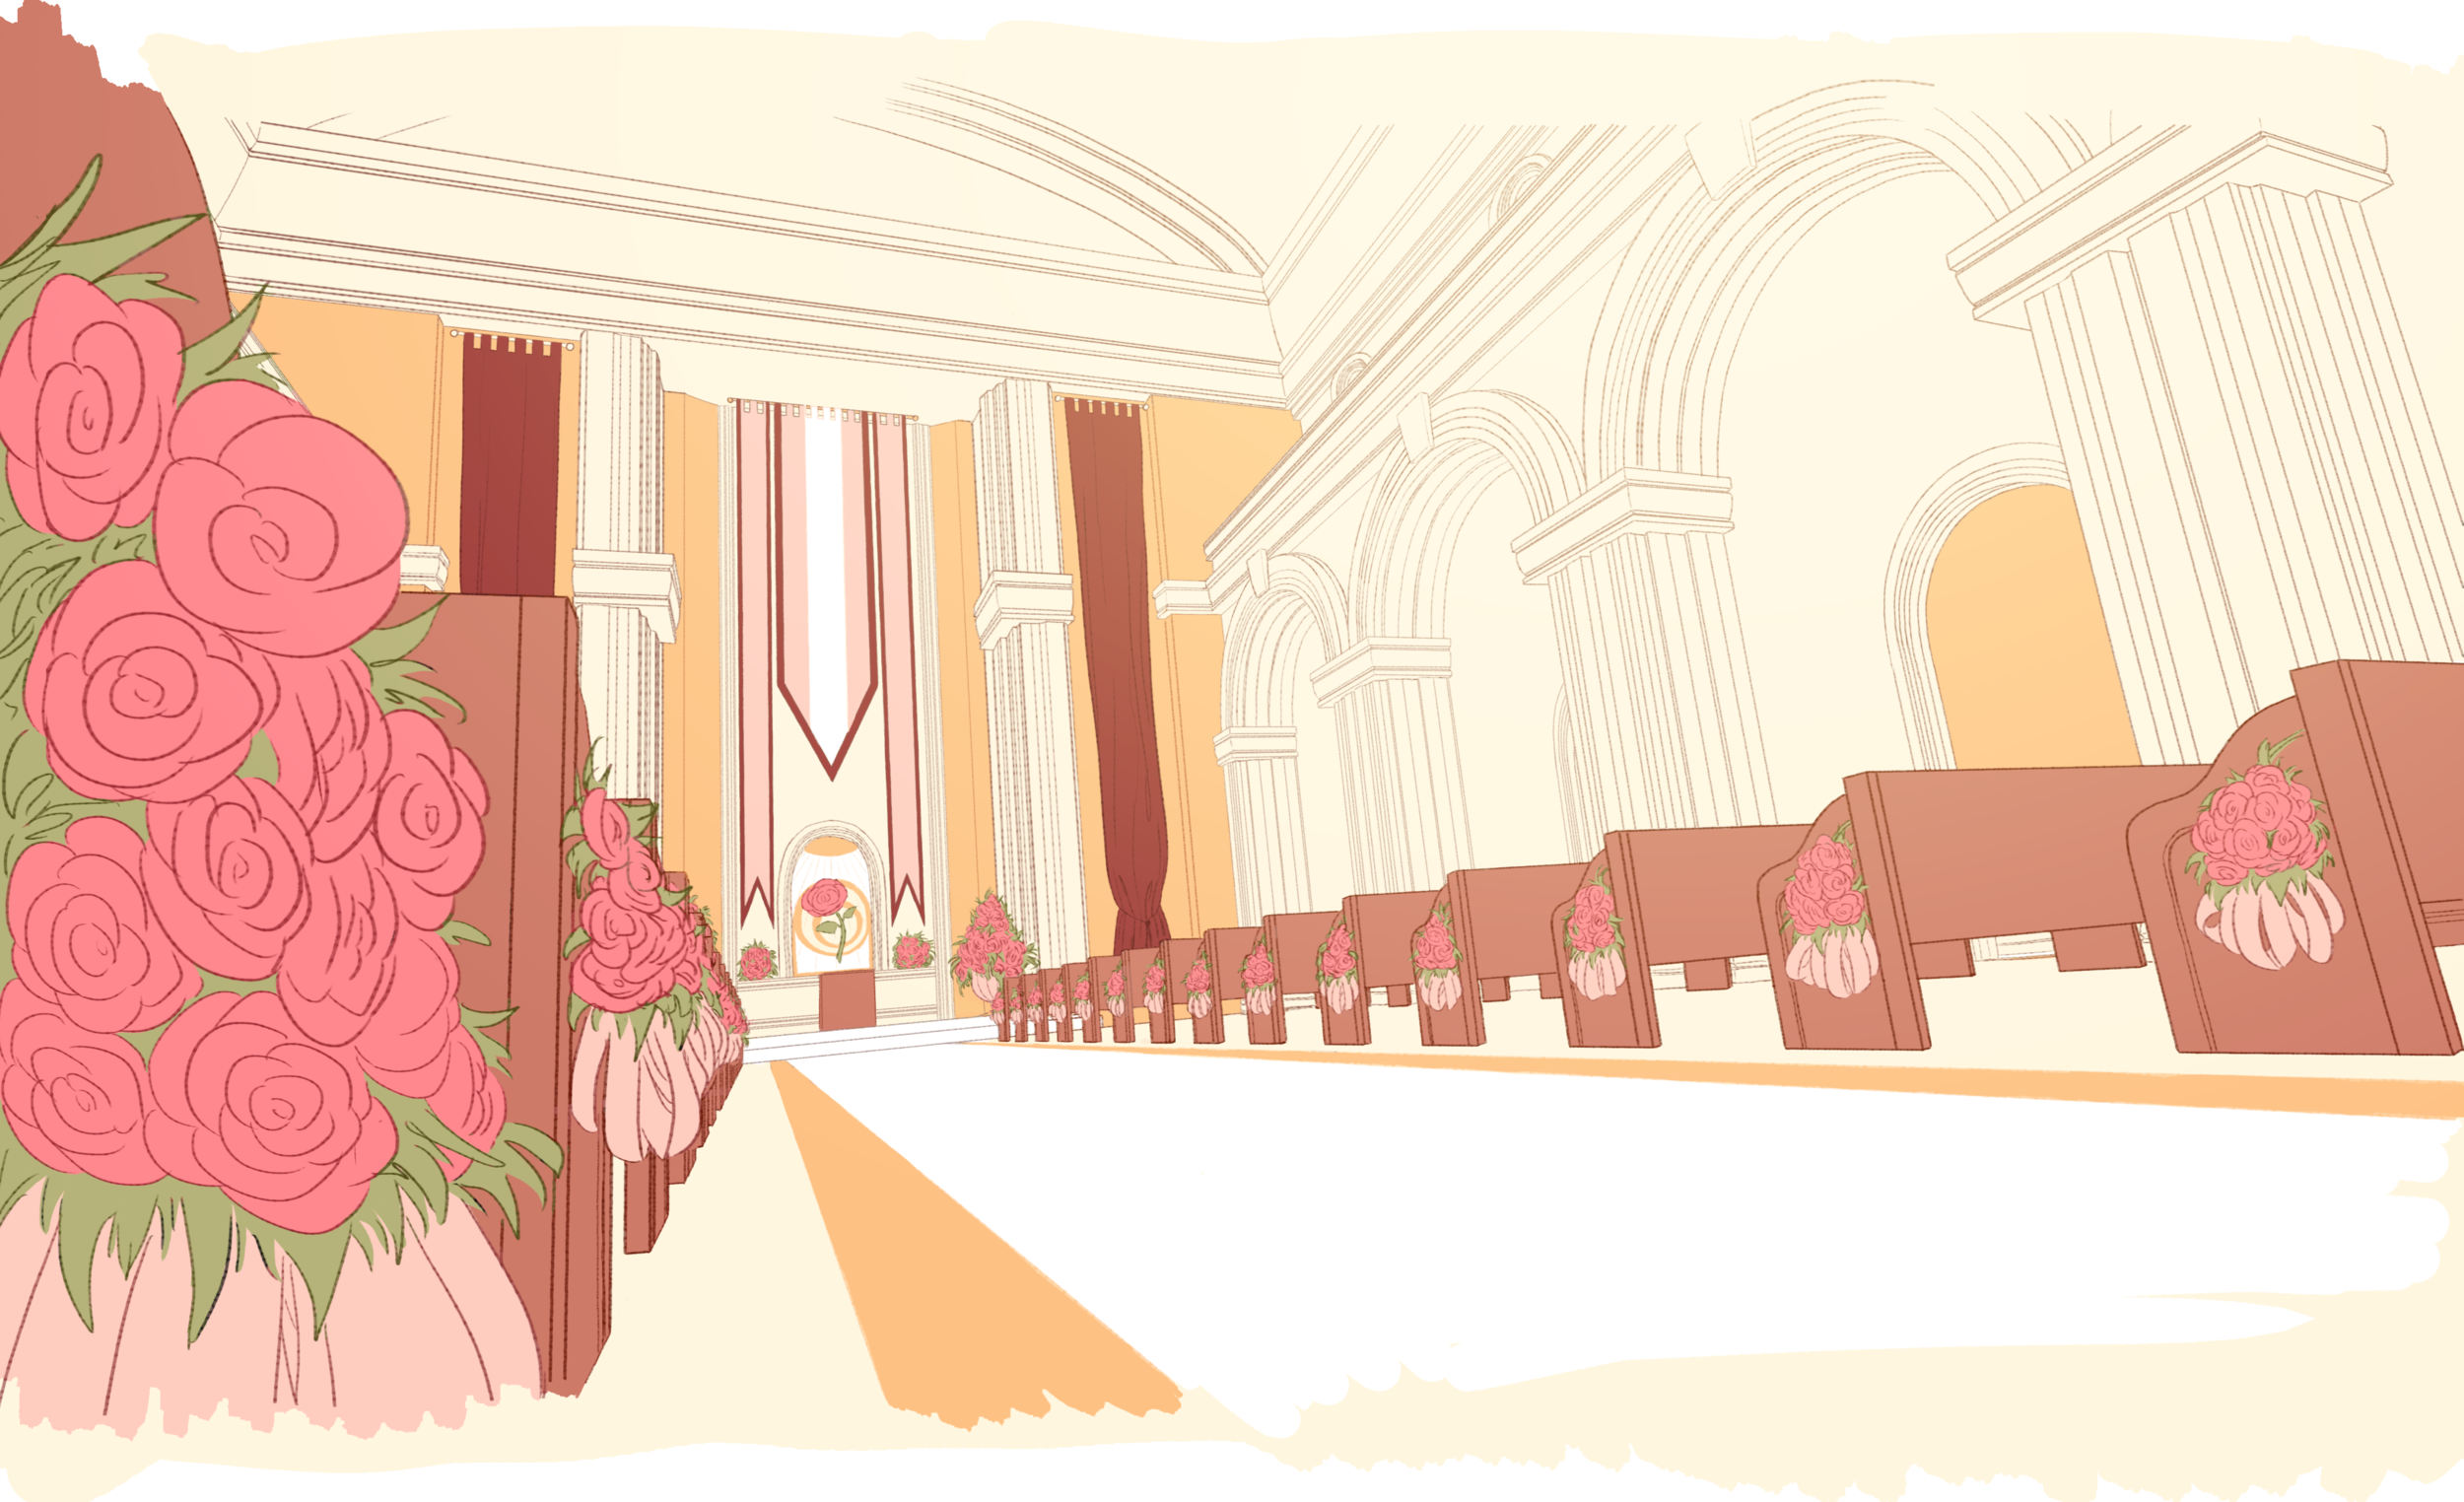 layout_7_wip.png